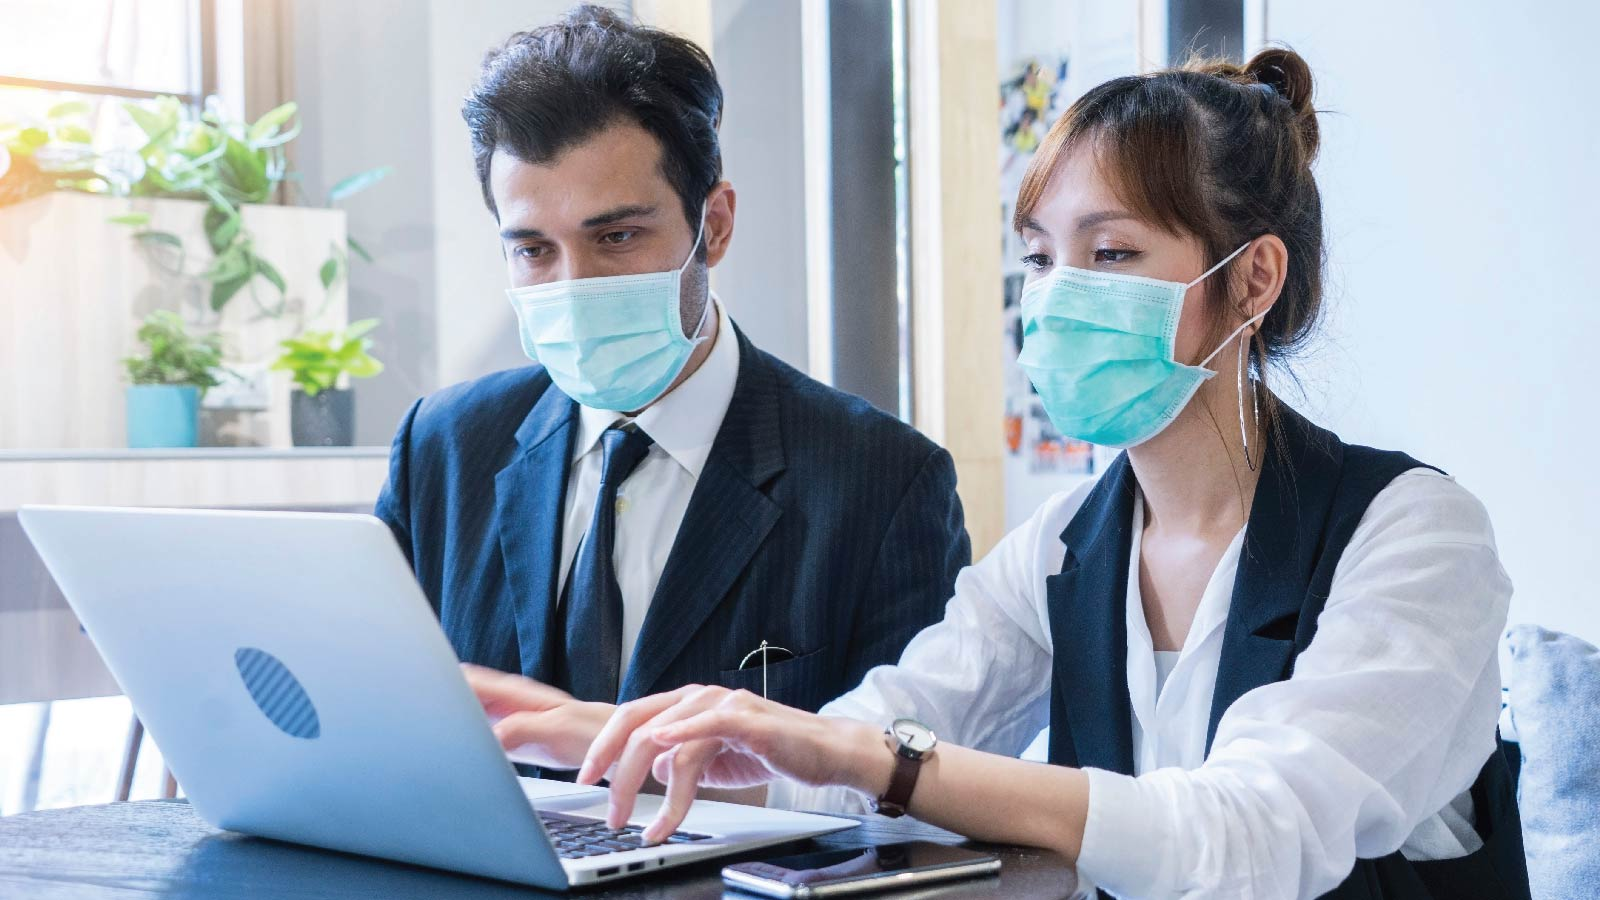 Preparing IT Teams for the Second-wave of COVID-19 Outbreak